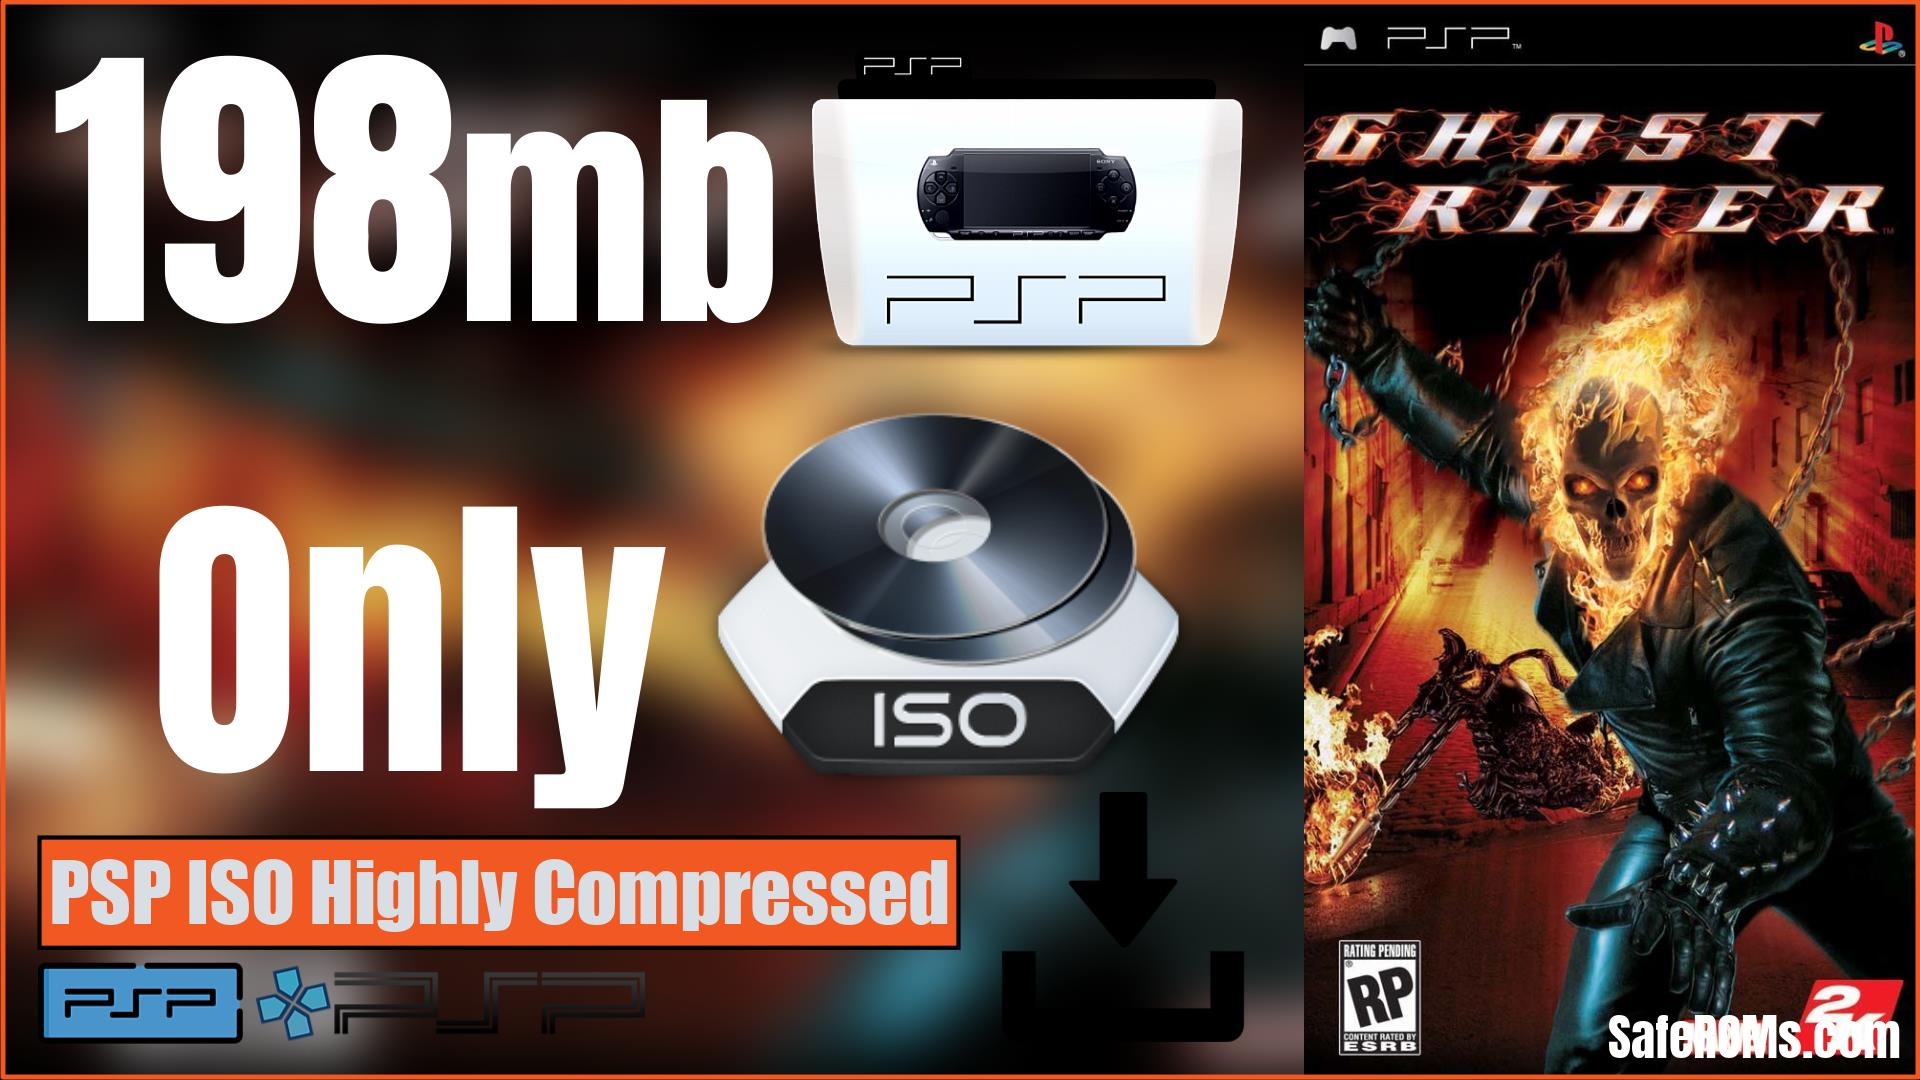 Ghost Rider PSP ISO Highly Compressed Download